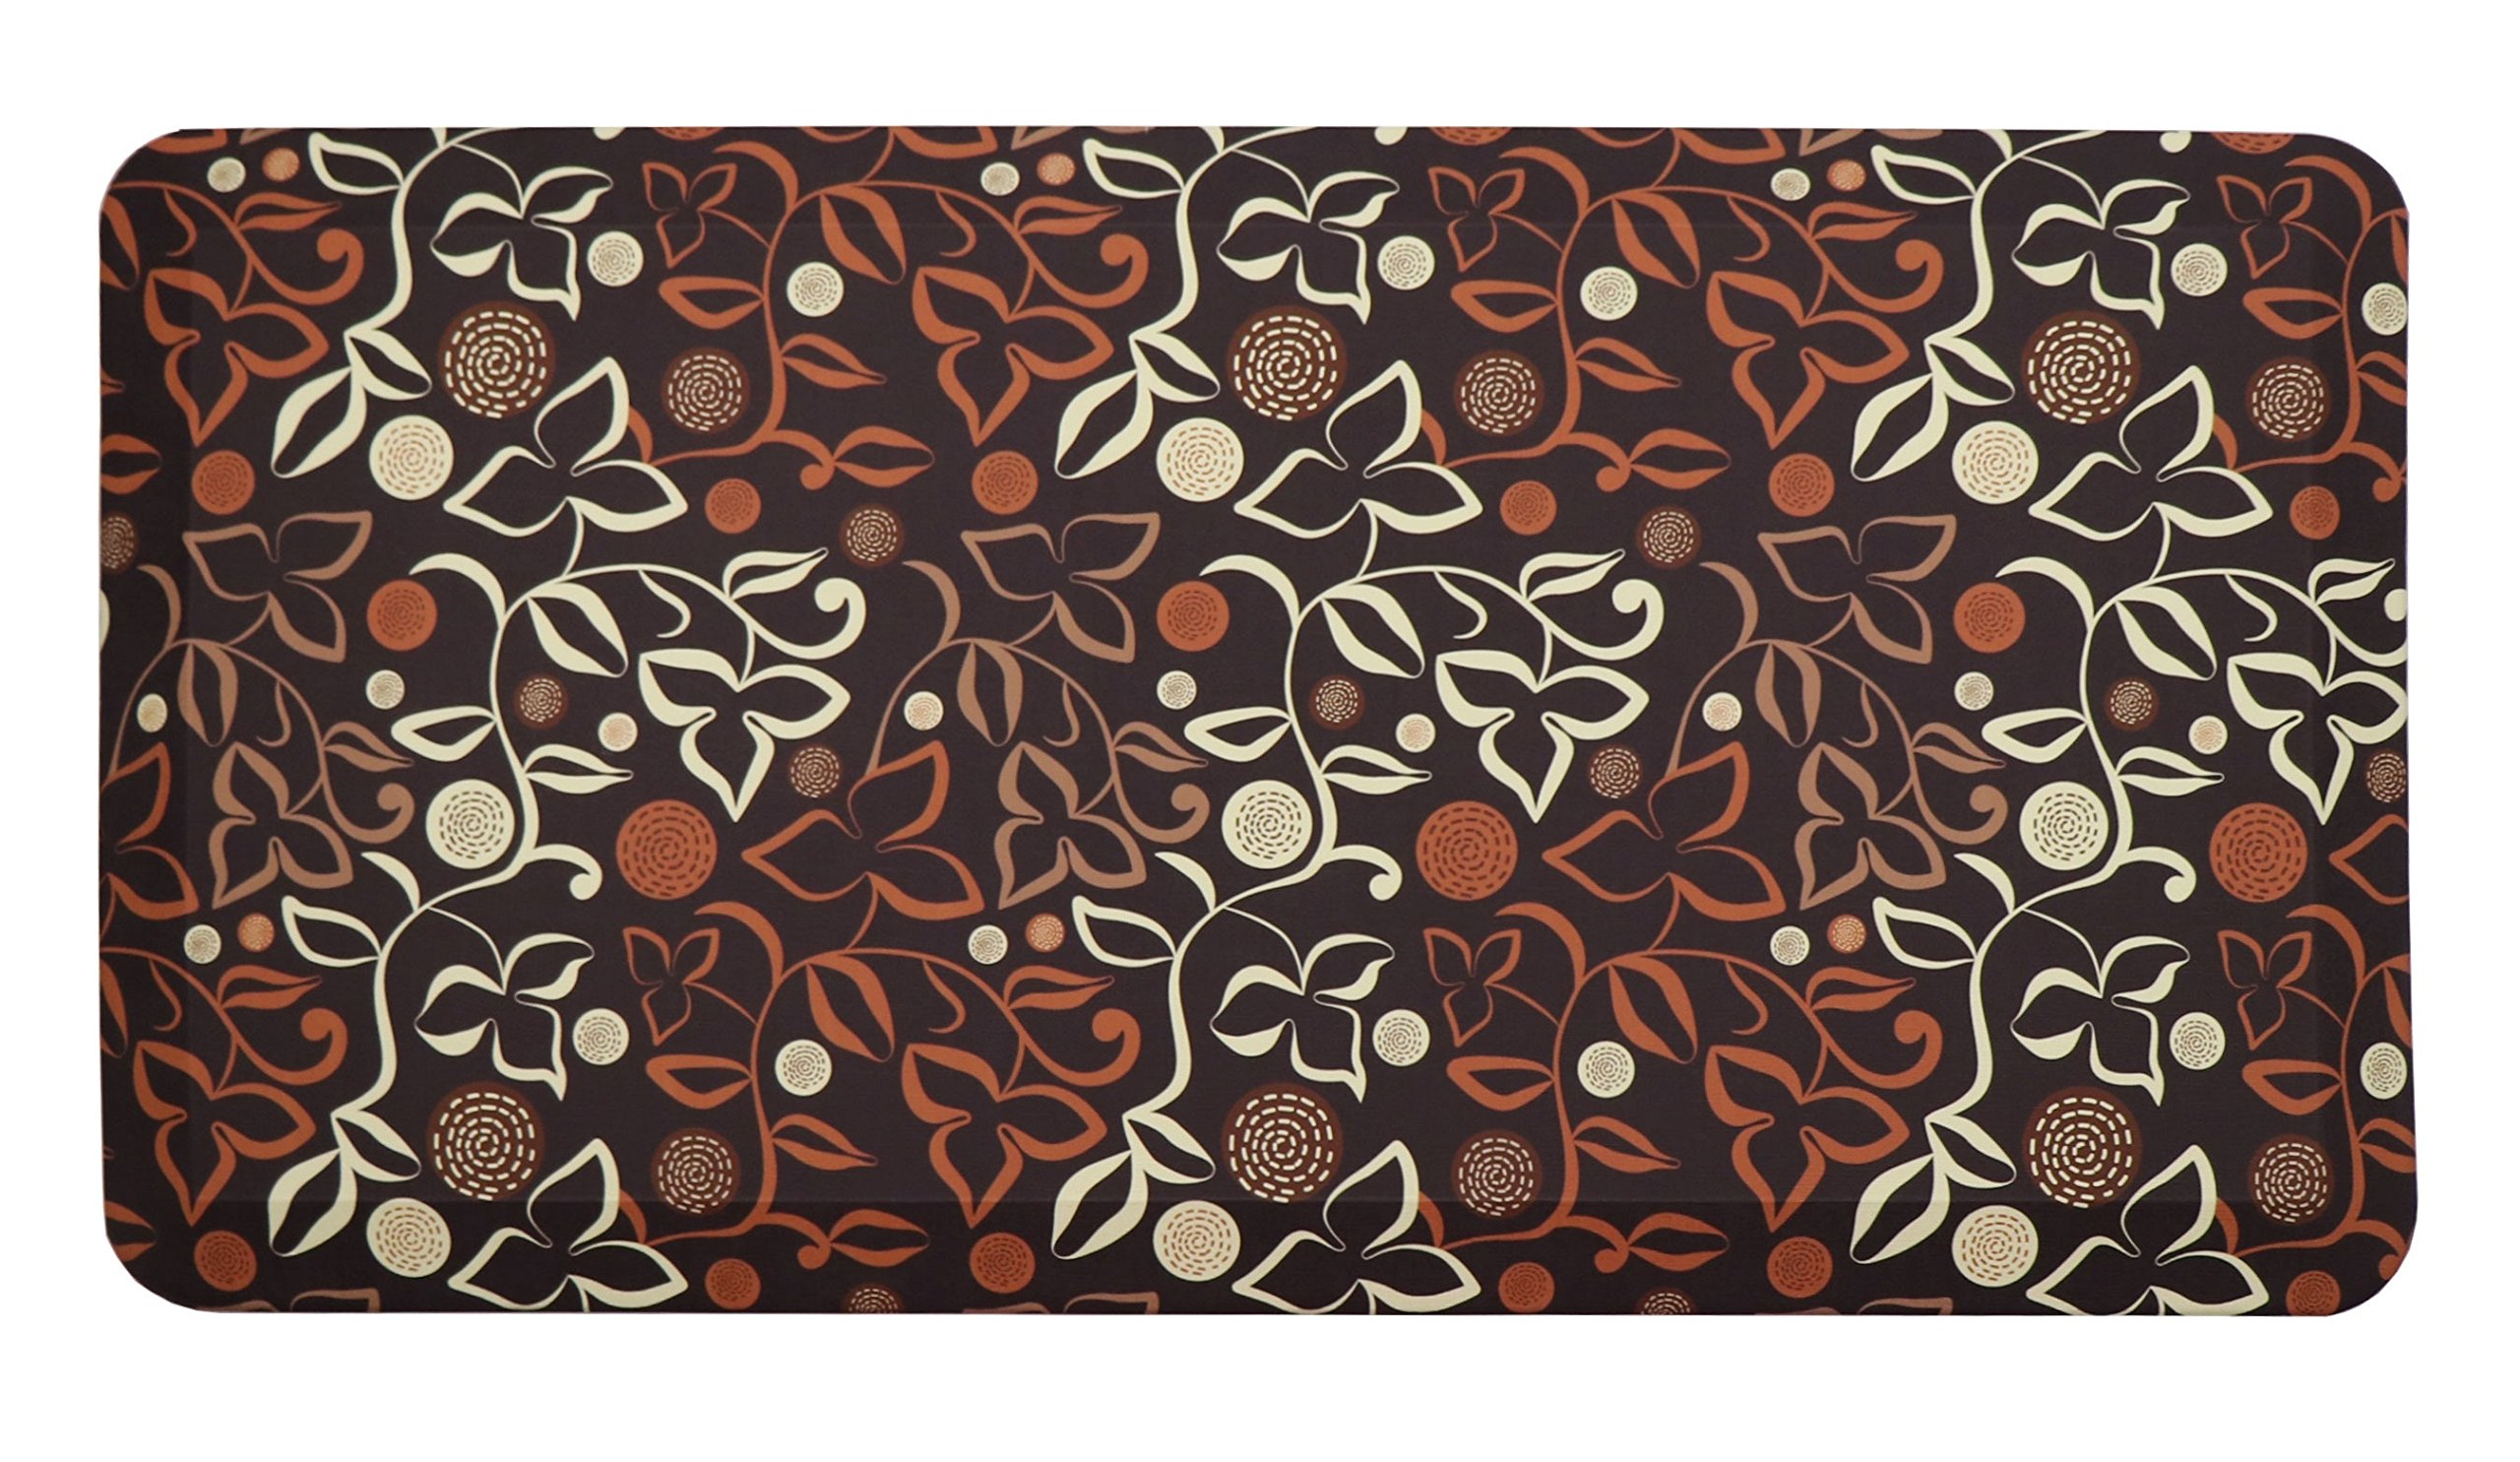 Butterfly Kitchen Mat Anti Fatigue Comfort Floor Mats - Perfect For kitchen, Non-Toxic, Highest Quality Material, Waterproof, 20 x 39 inches